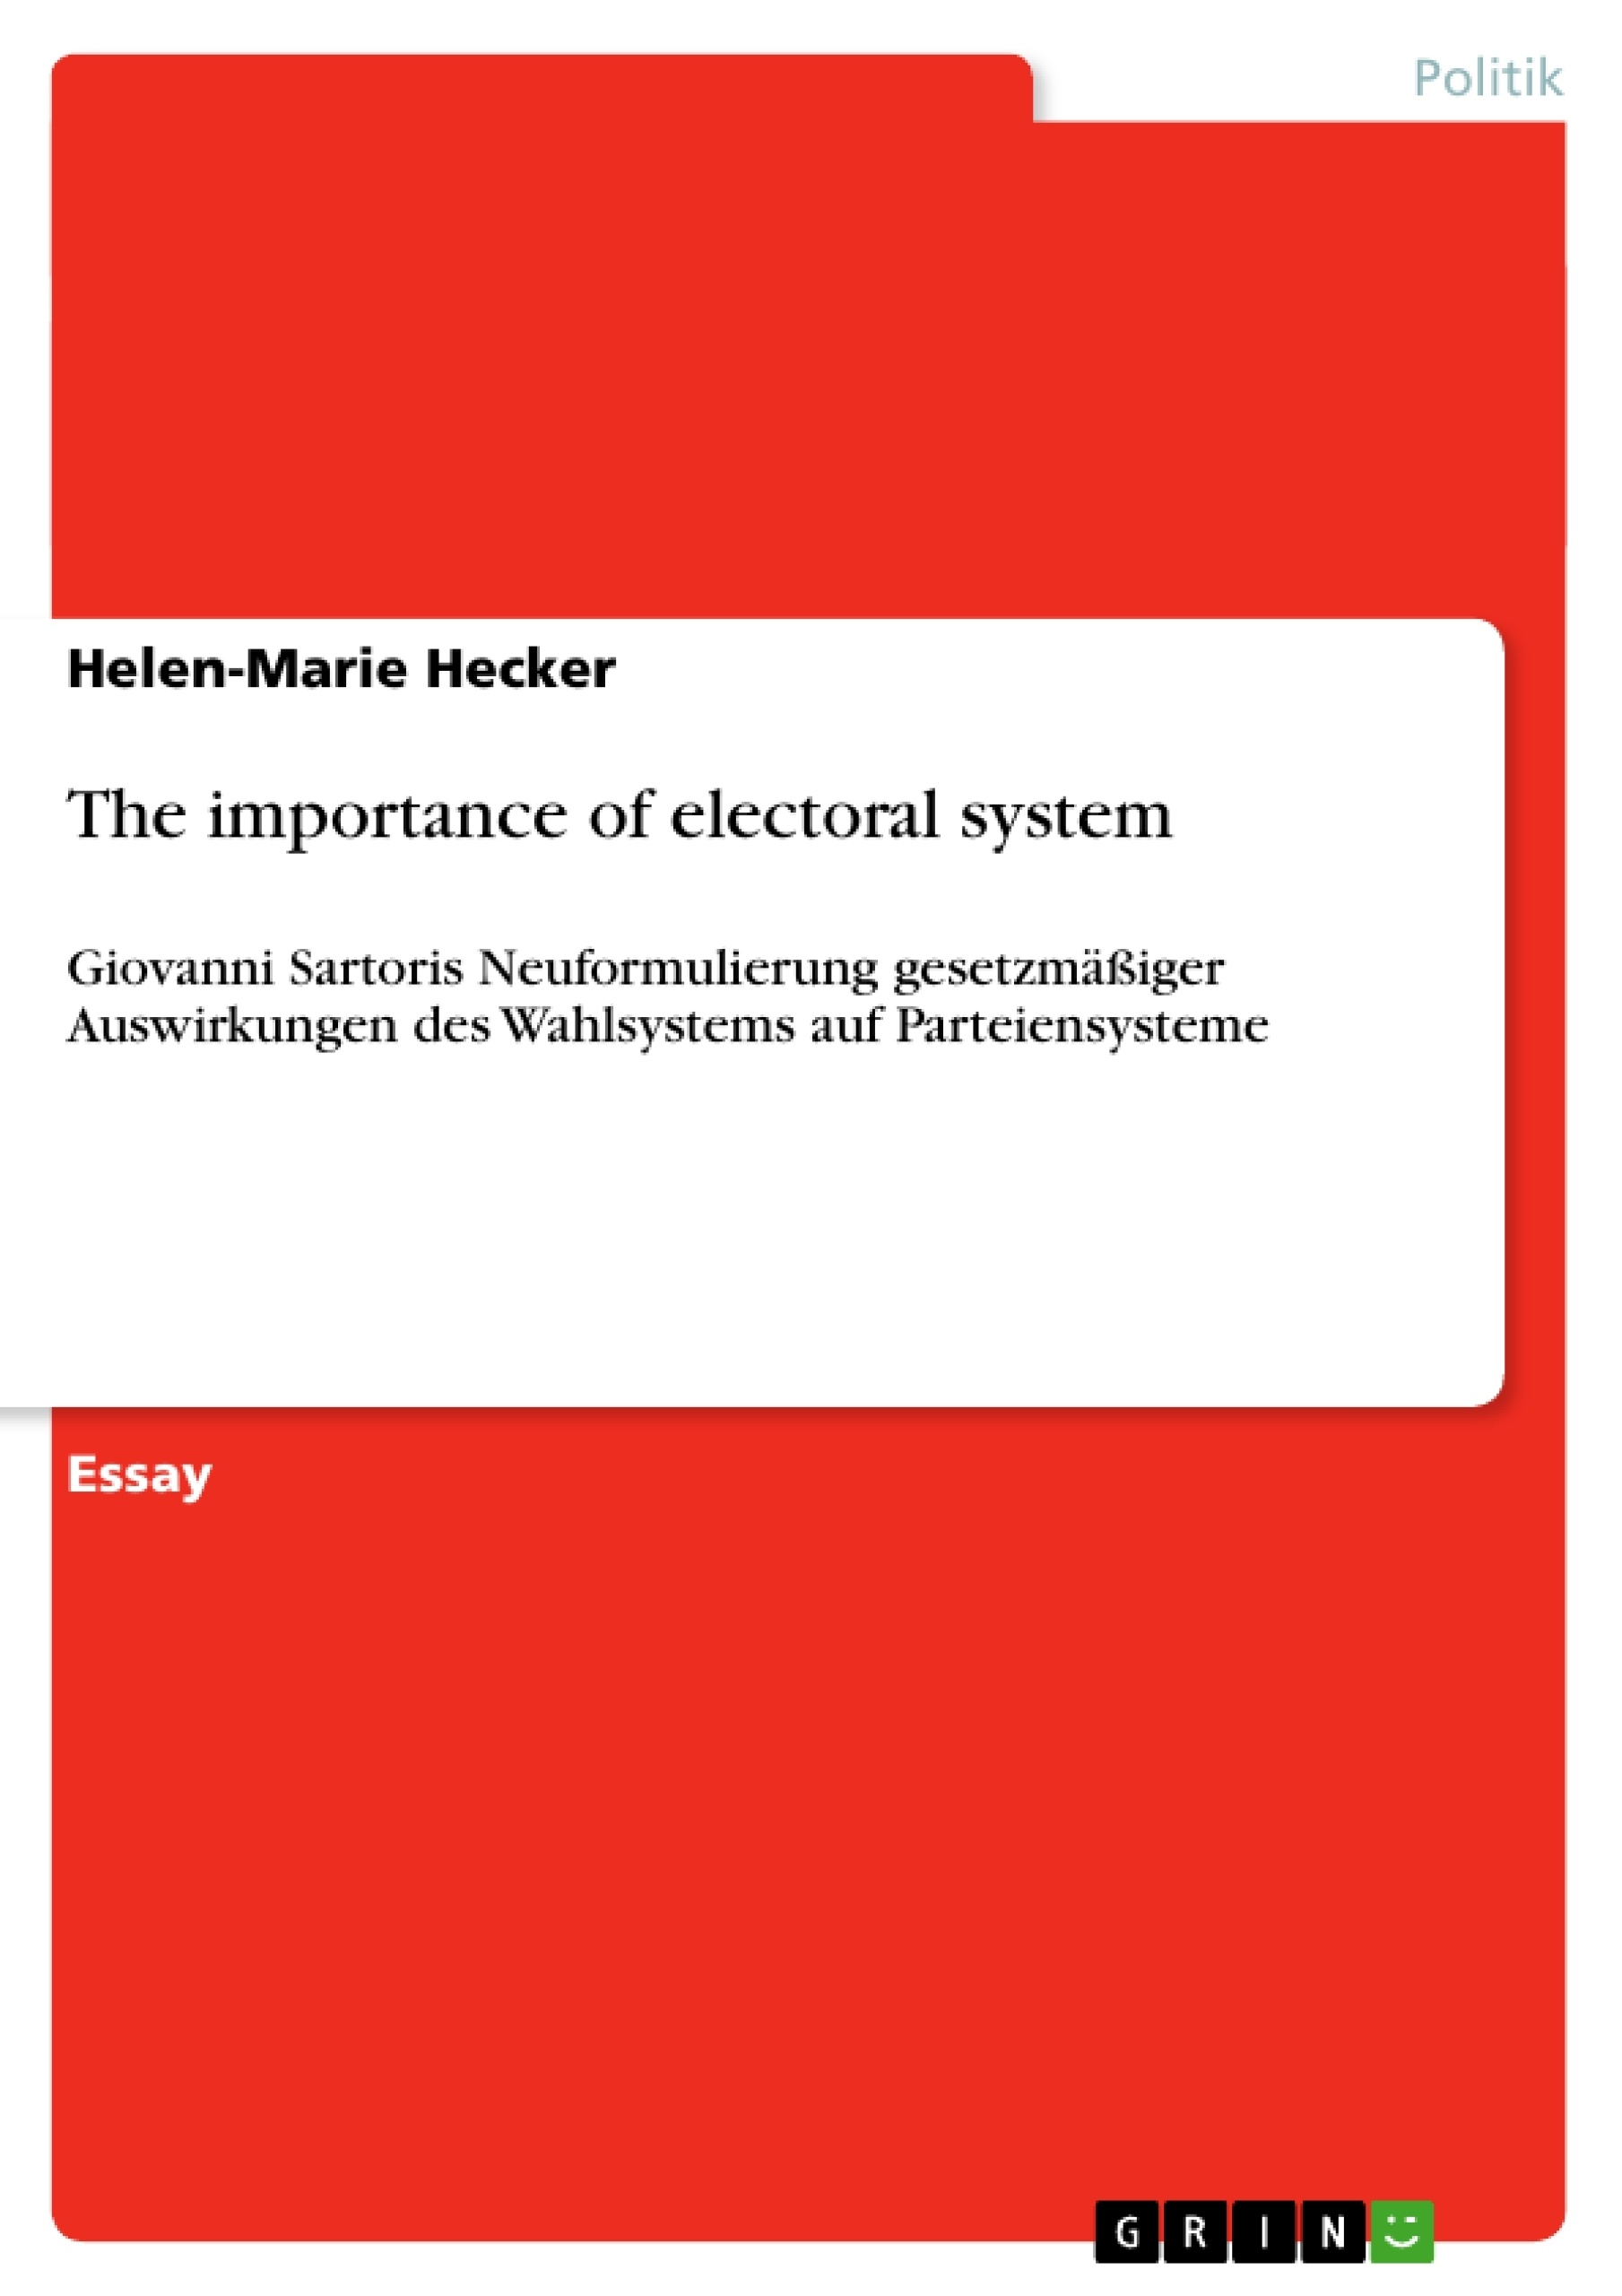 Titel: The importance of electoral system